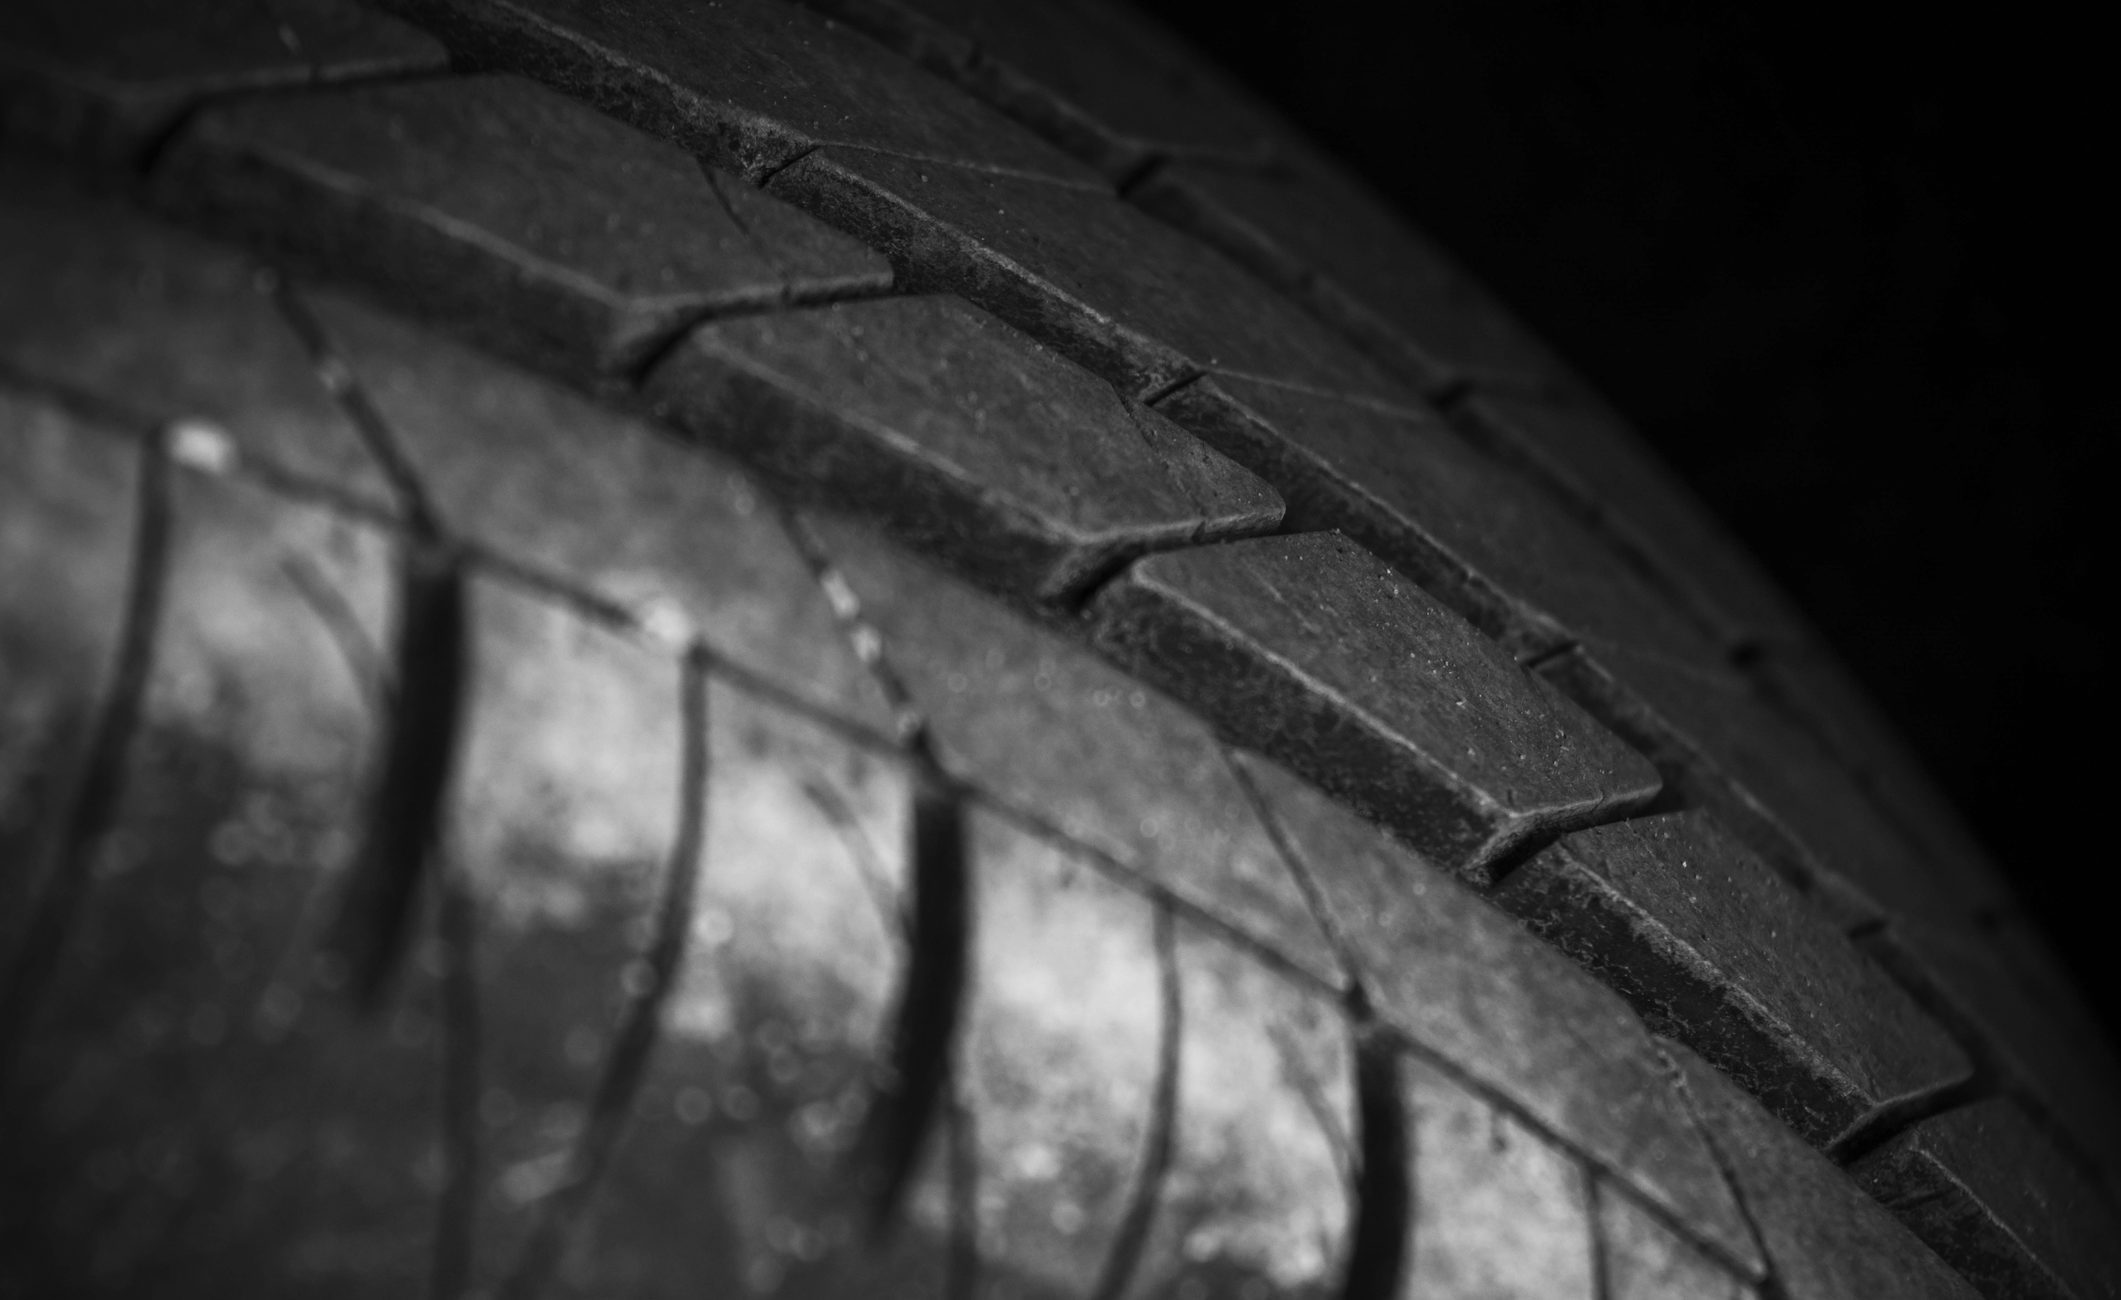 close up shot of a black car tyre